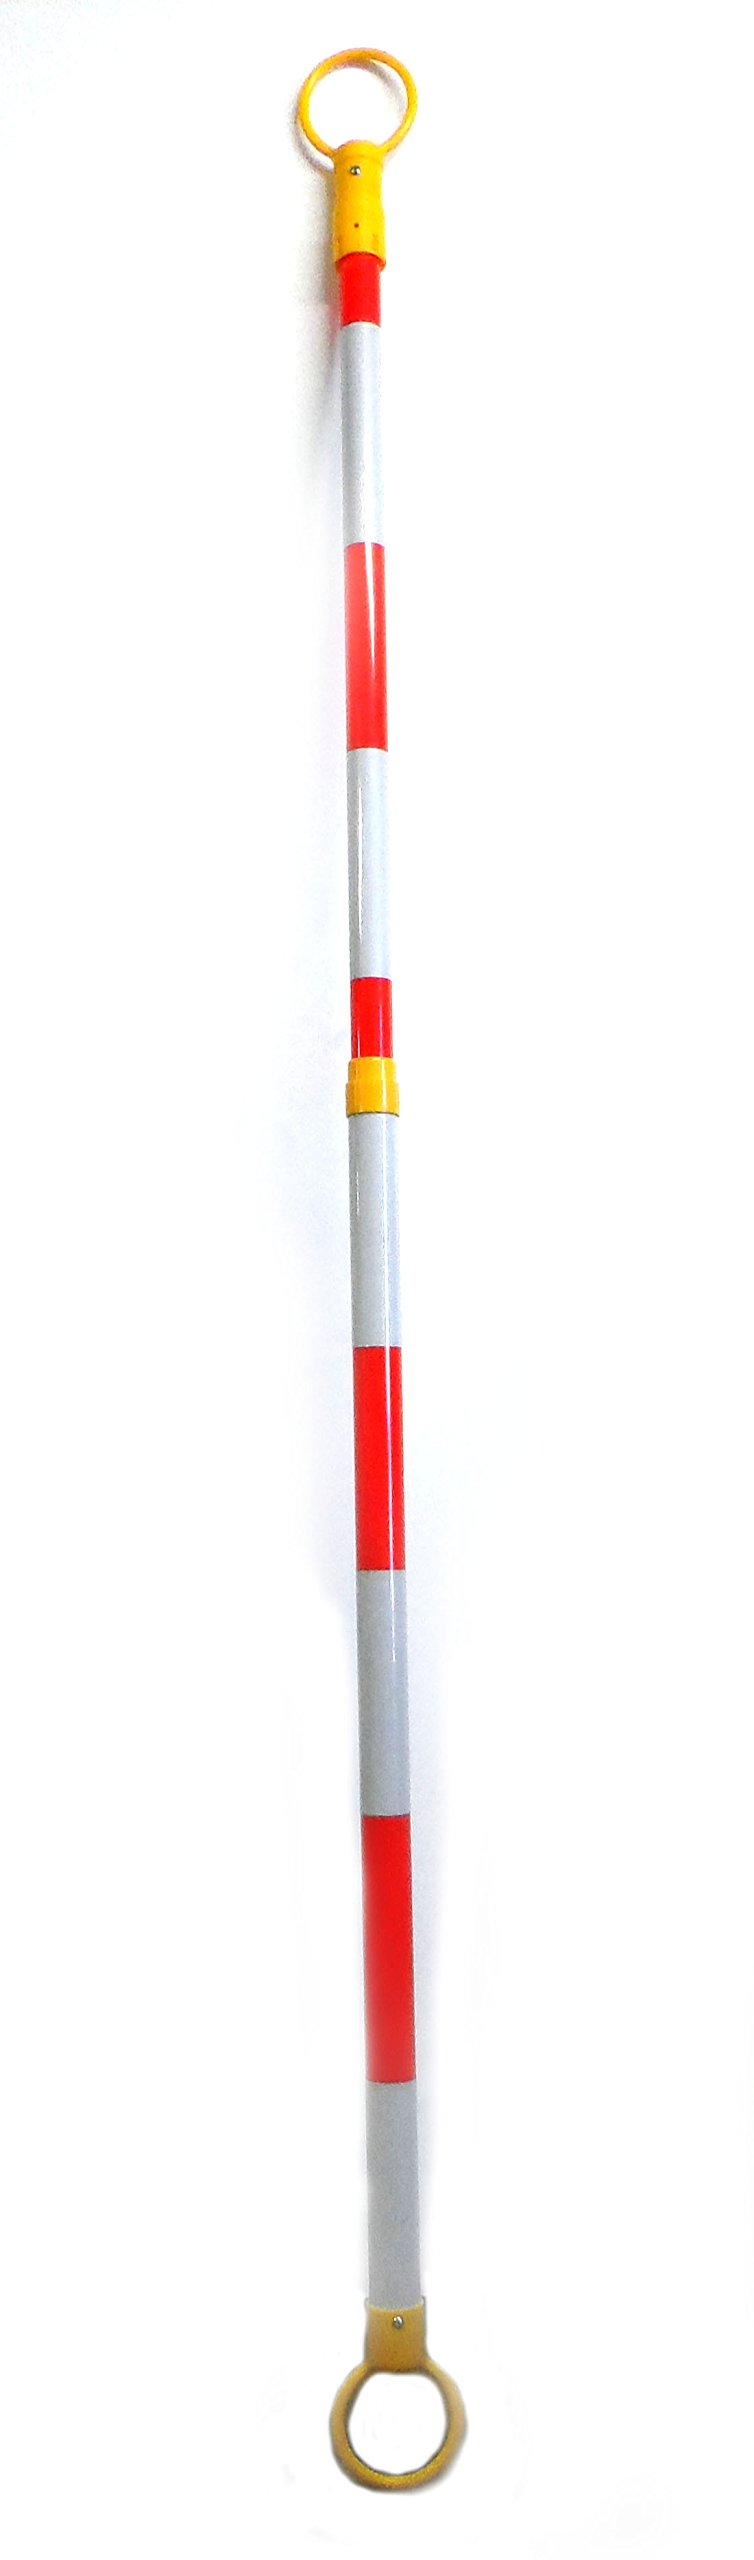 Retractable Cone Bar 2''OD x 52-80'' Length Traffic Cone Barrier Bar Yellow/White by Voyager Tools